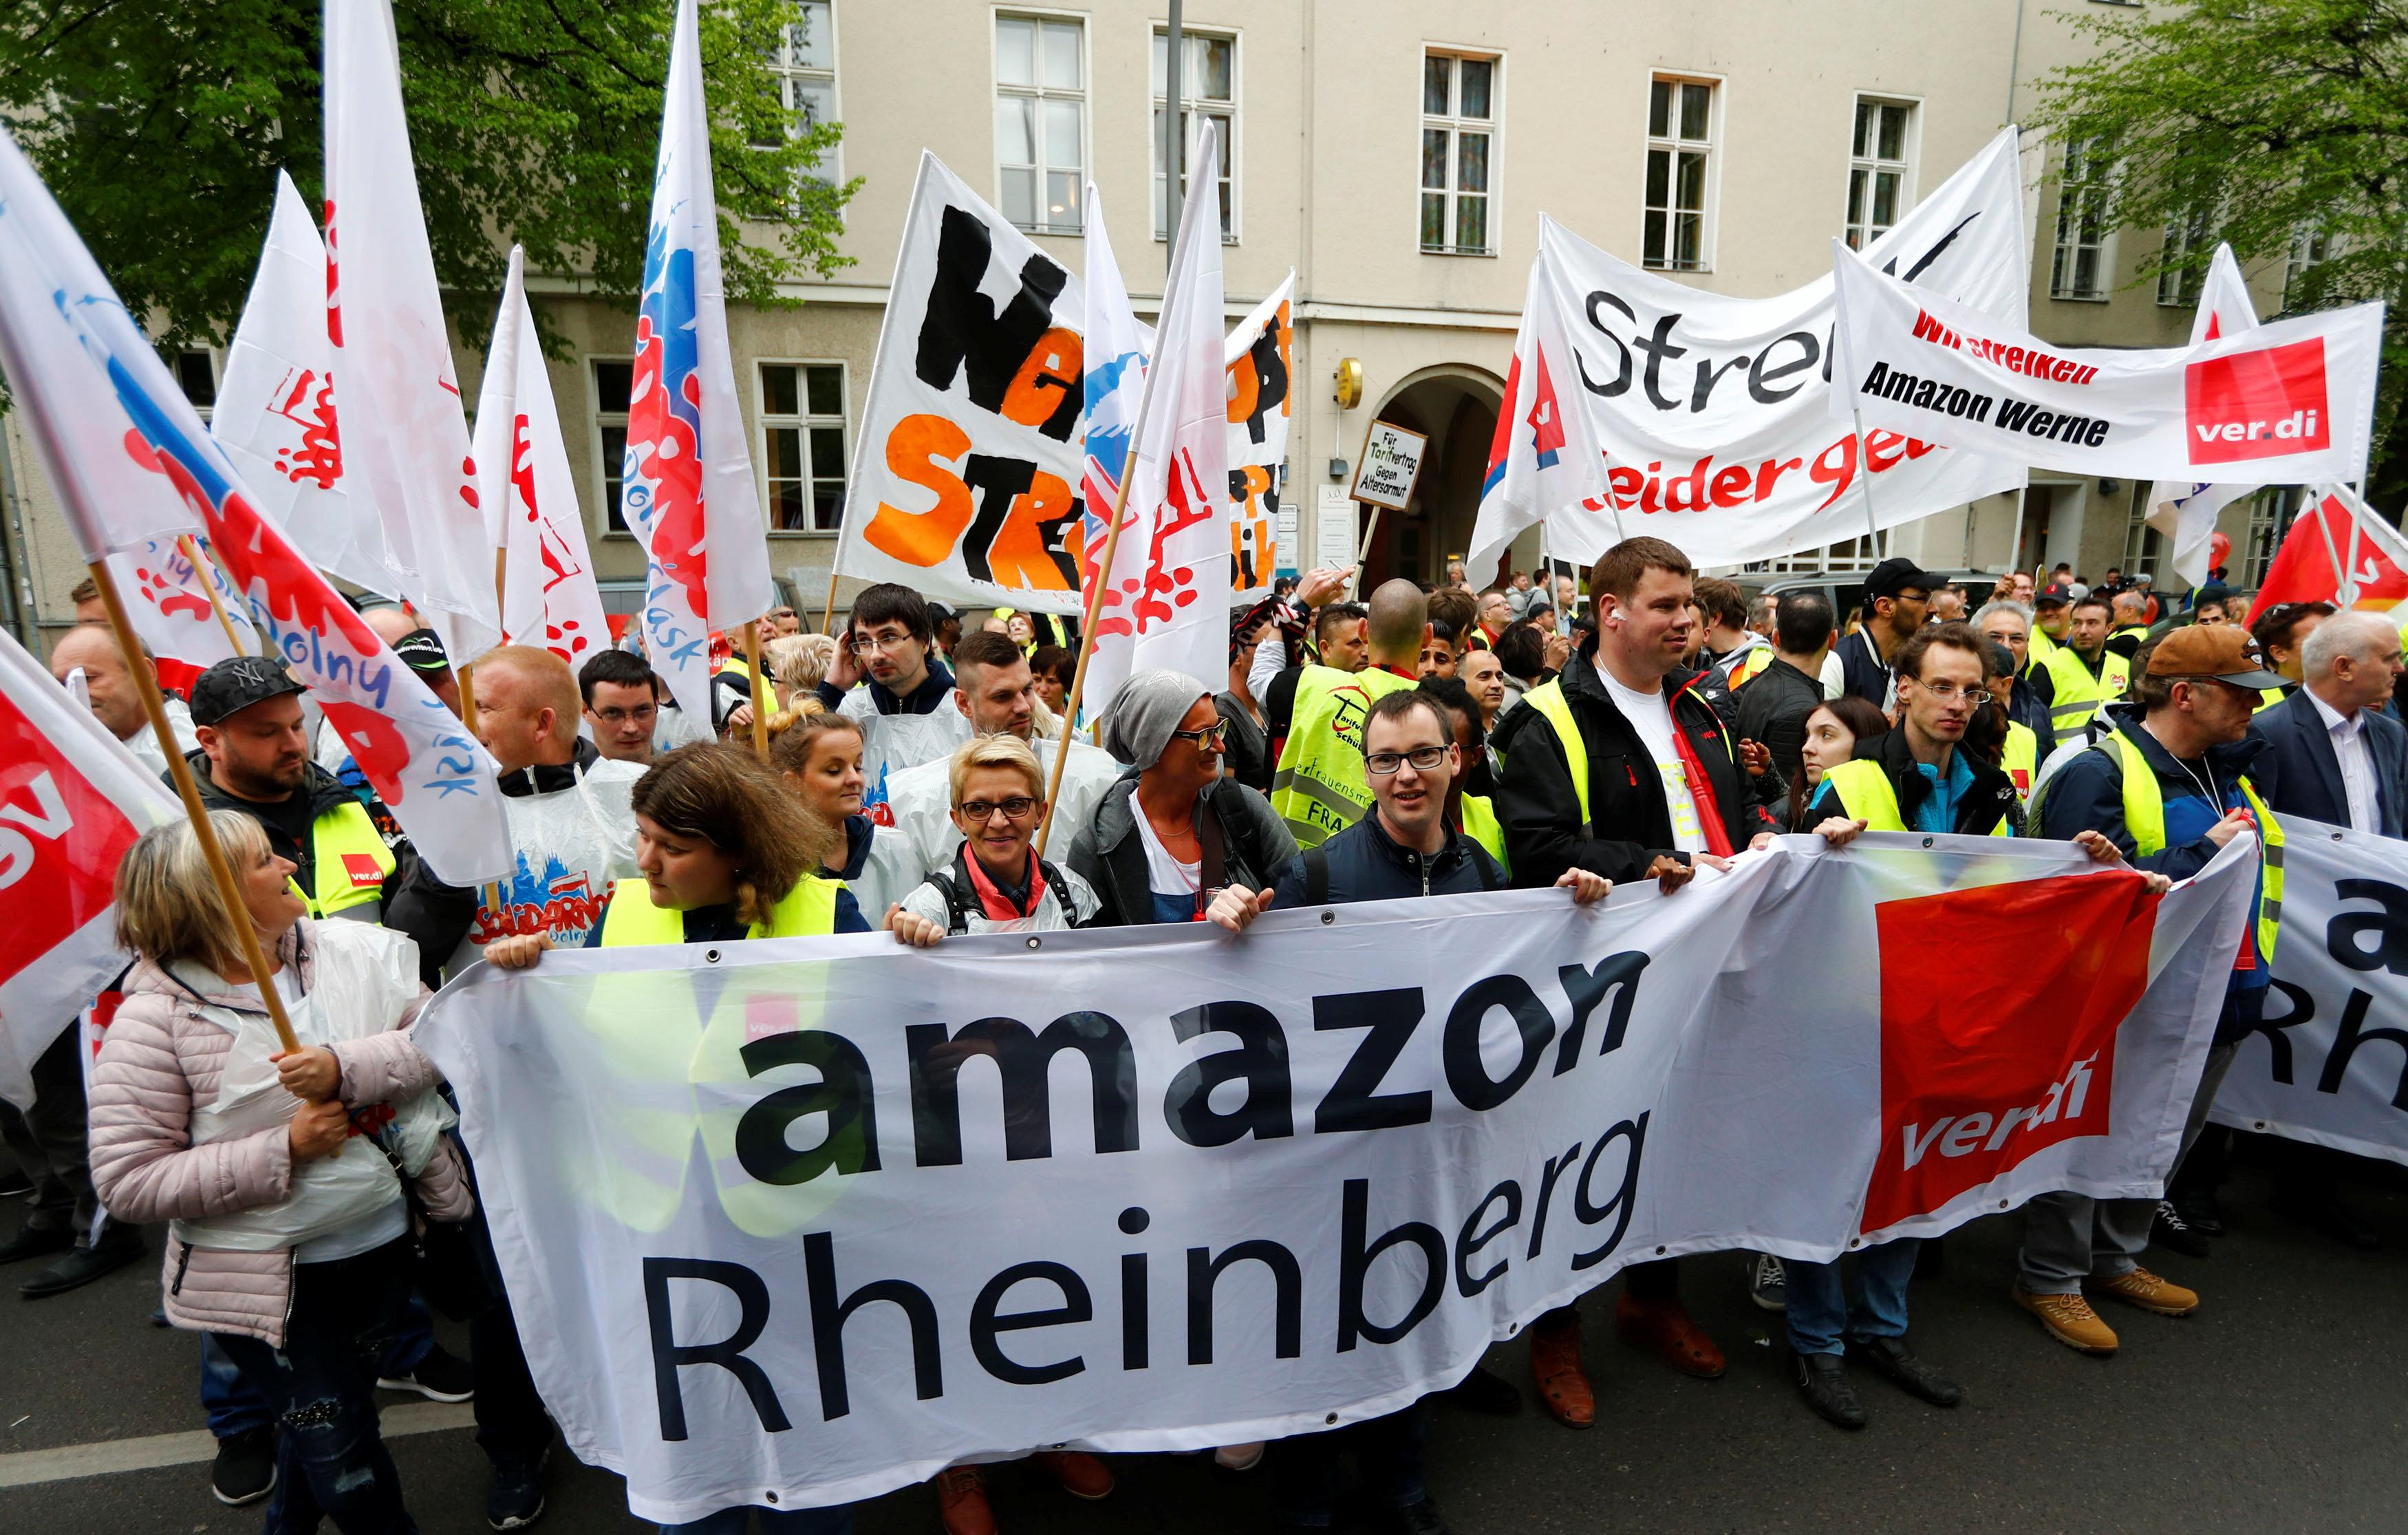 Amazon workers protest ahead of the annual Axel Springer award ceremony in Berlin, Germany, April 24, 2018. Fabrizio Bensch